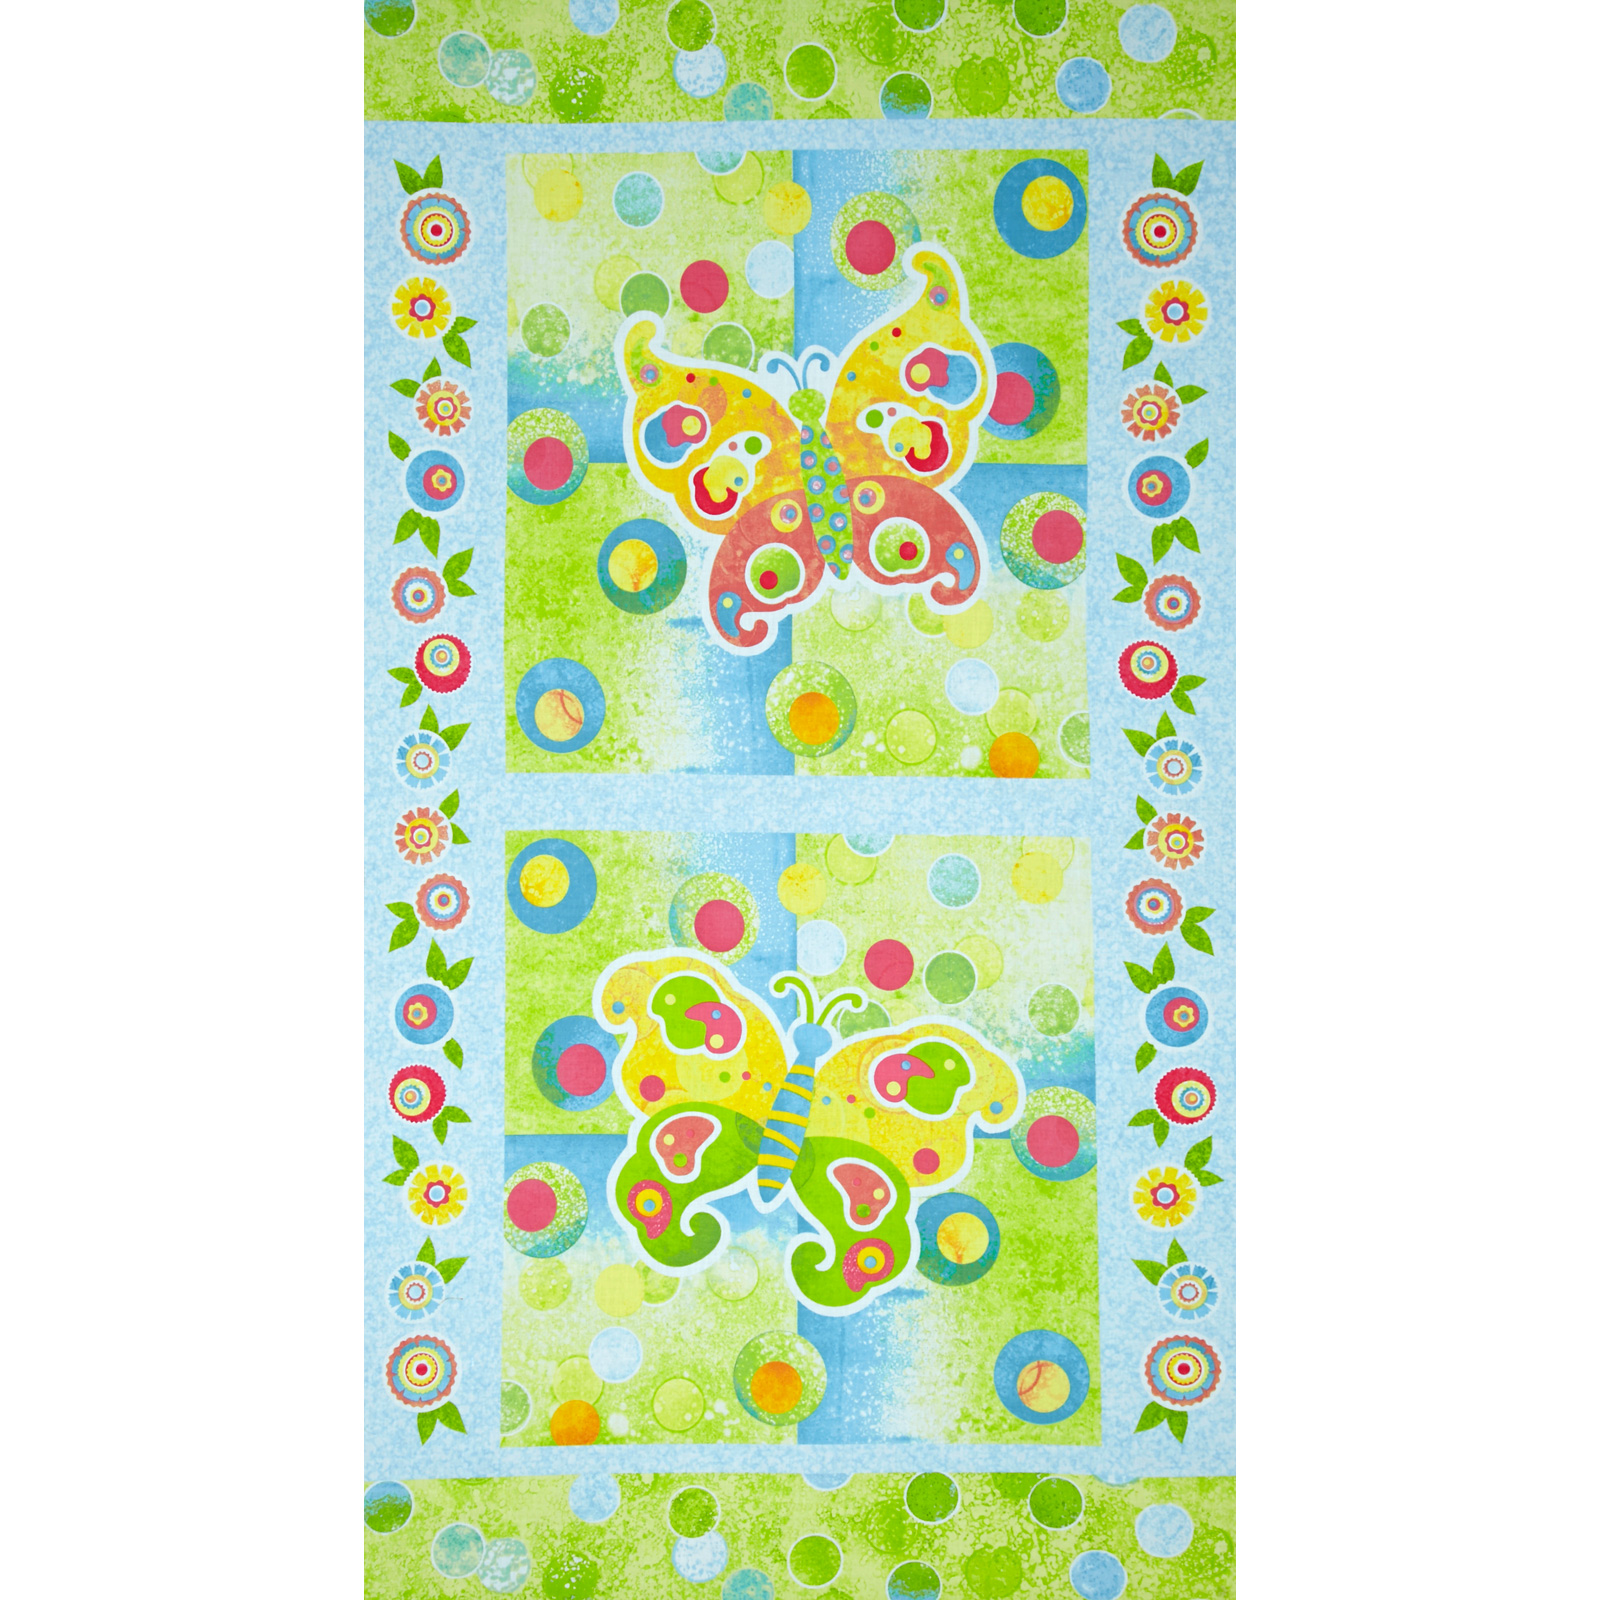 The Garden Club Butterfly Panel Blue/Yellow Fabric